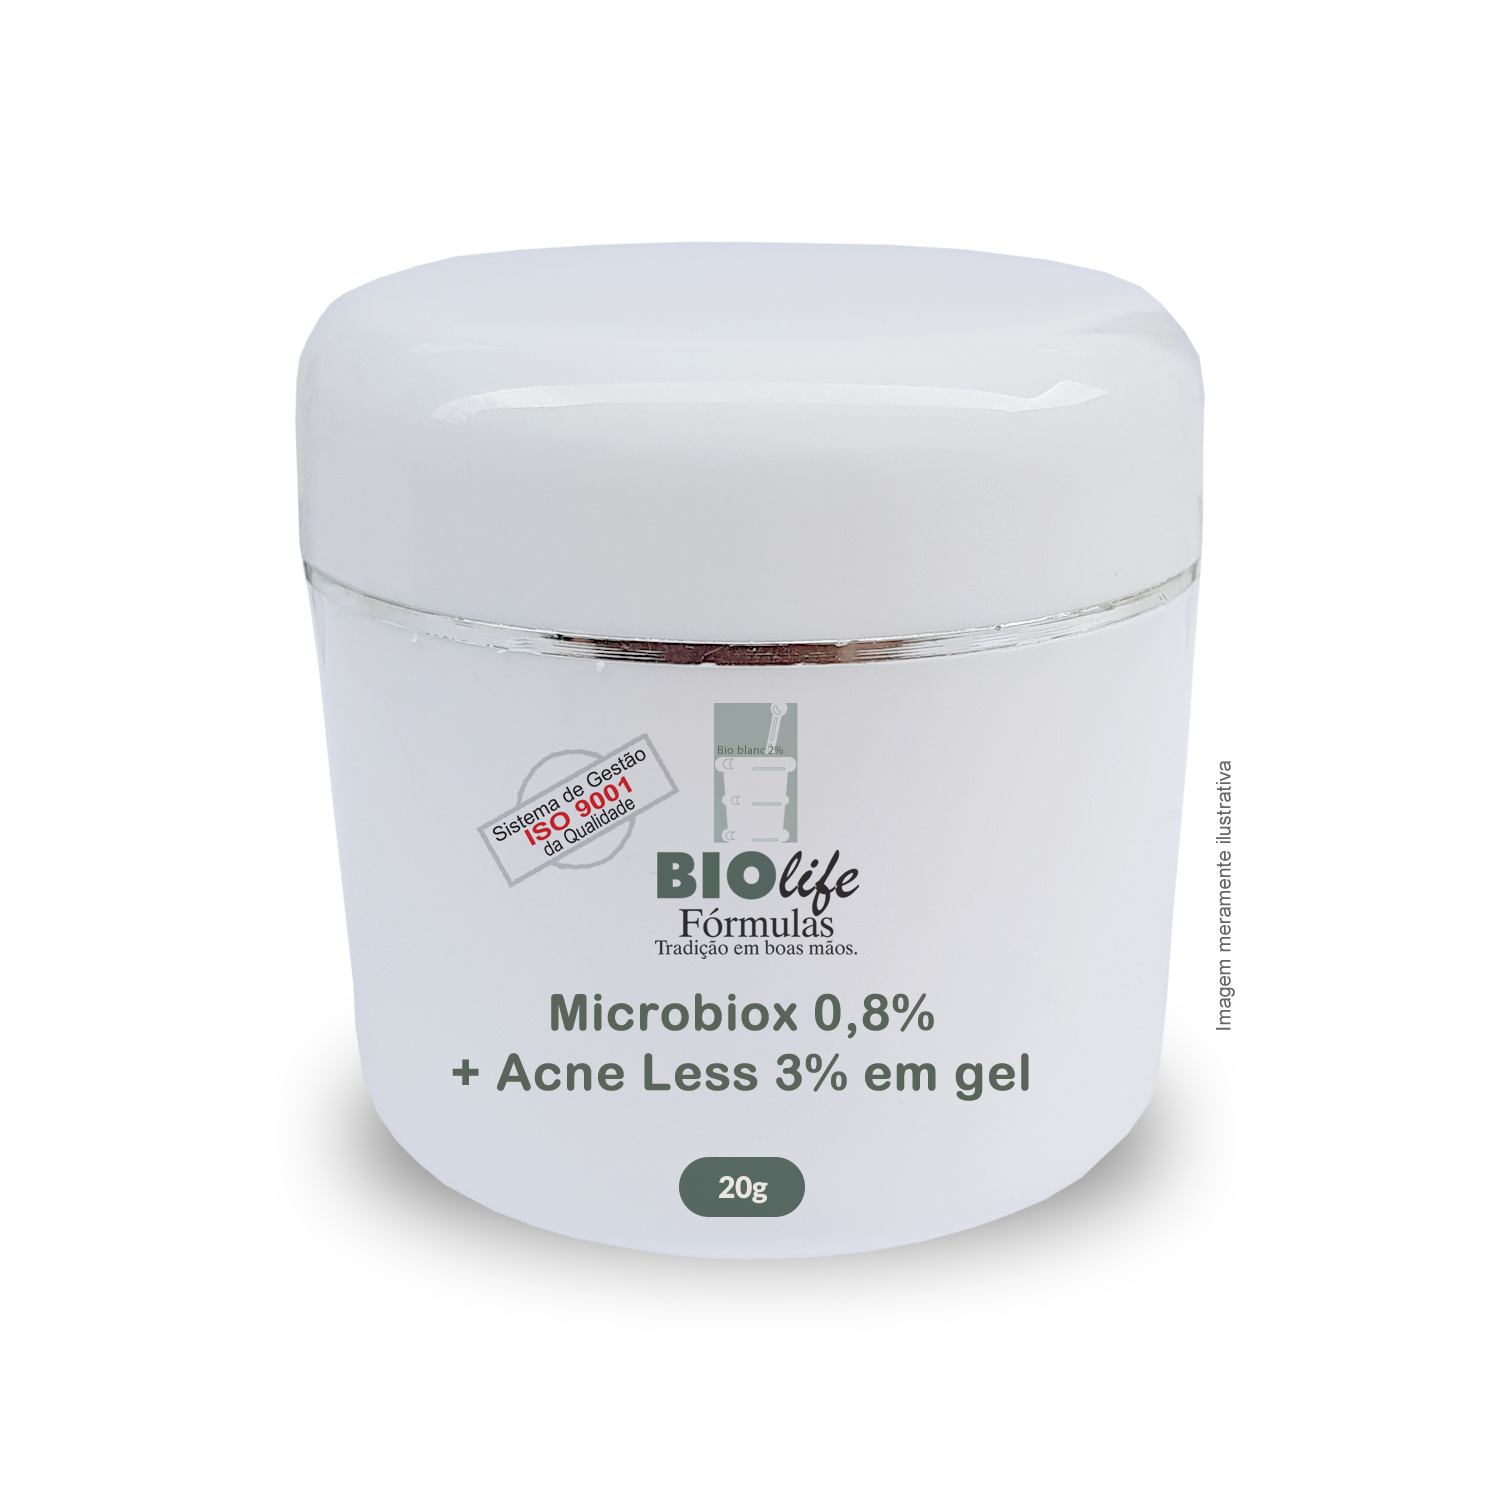 Microbiox 0,8% + Acne Less 3% + Gel base qsp 20g